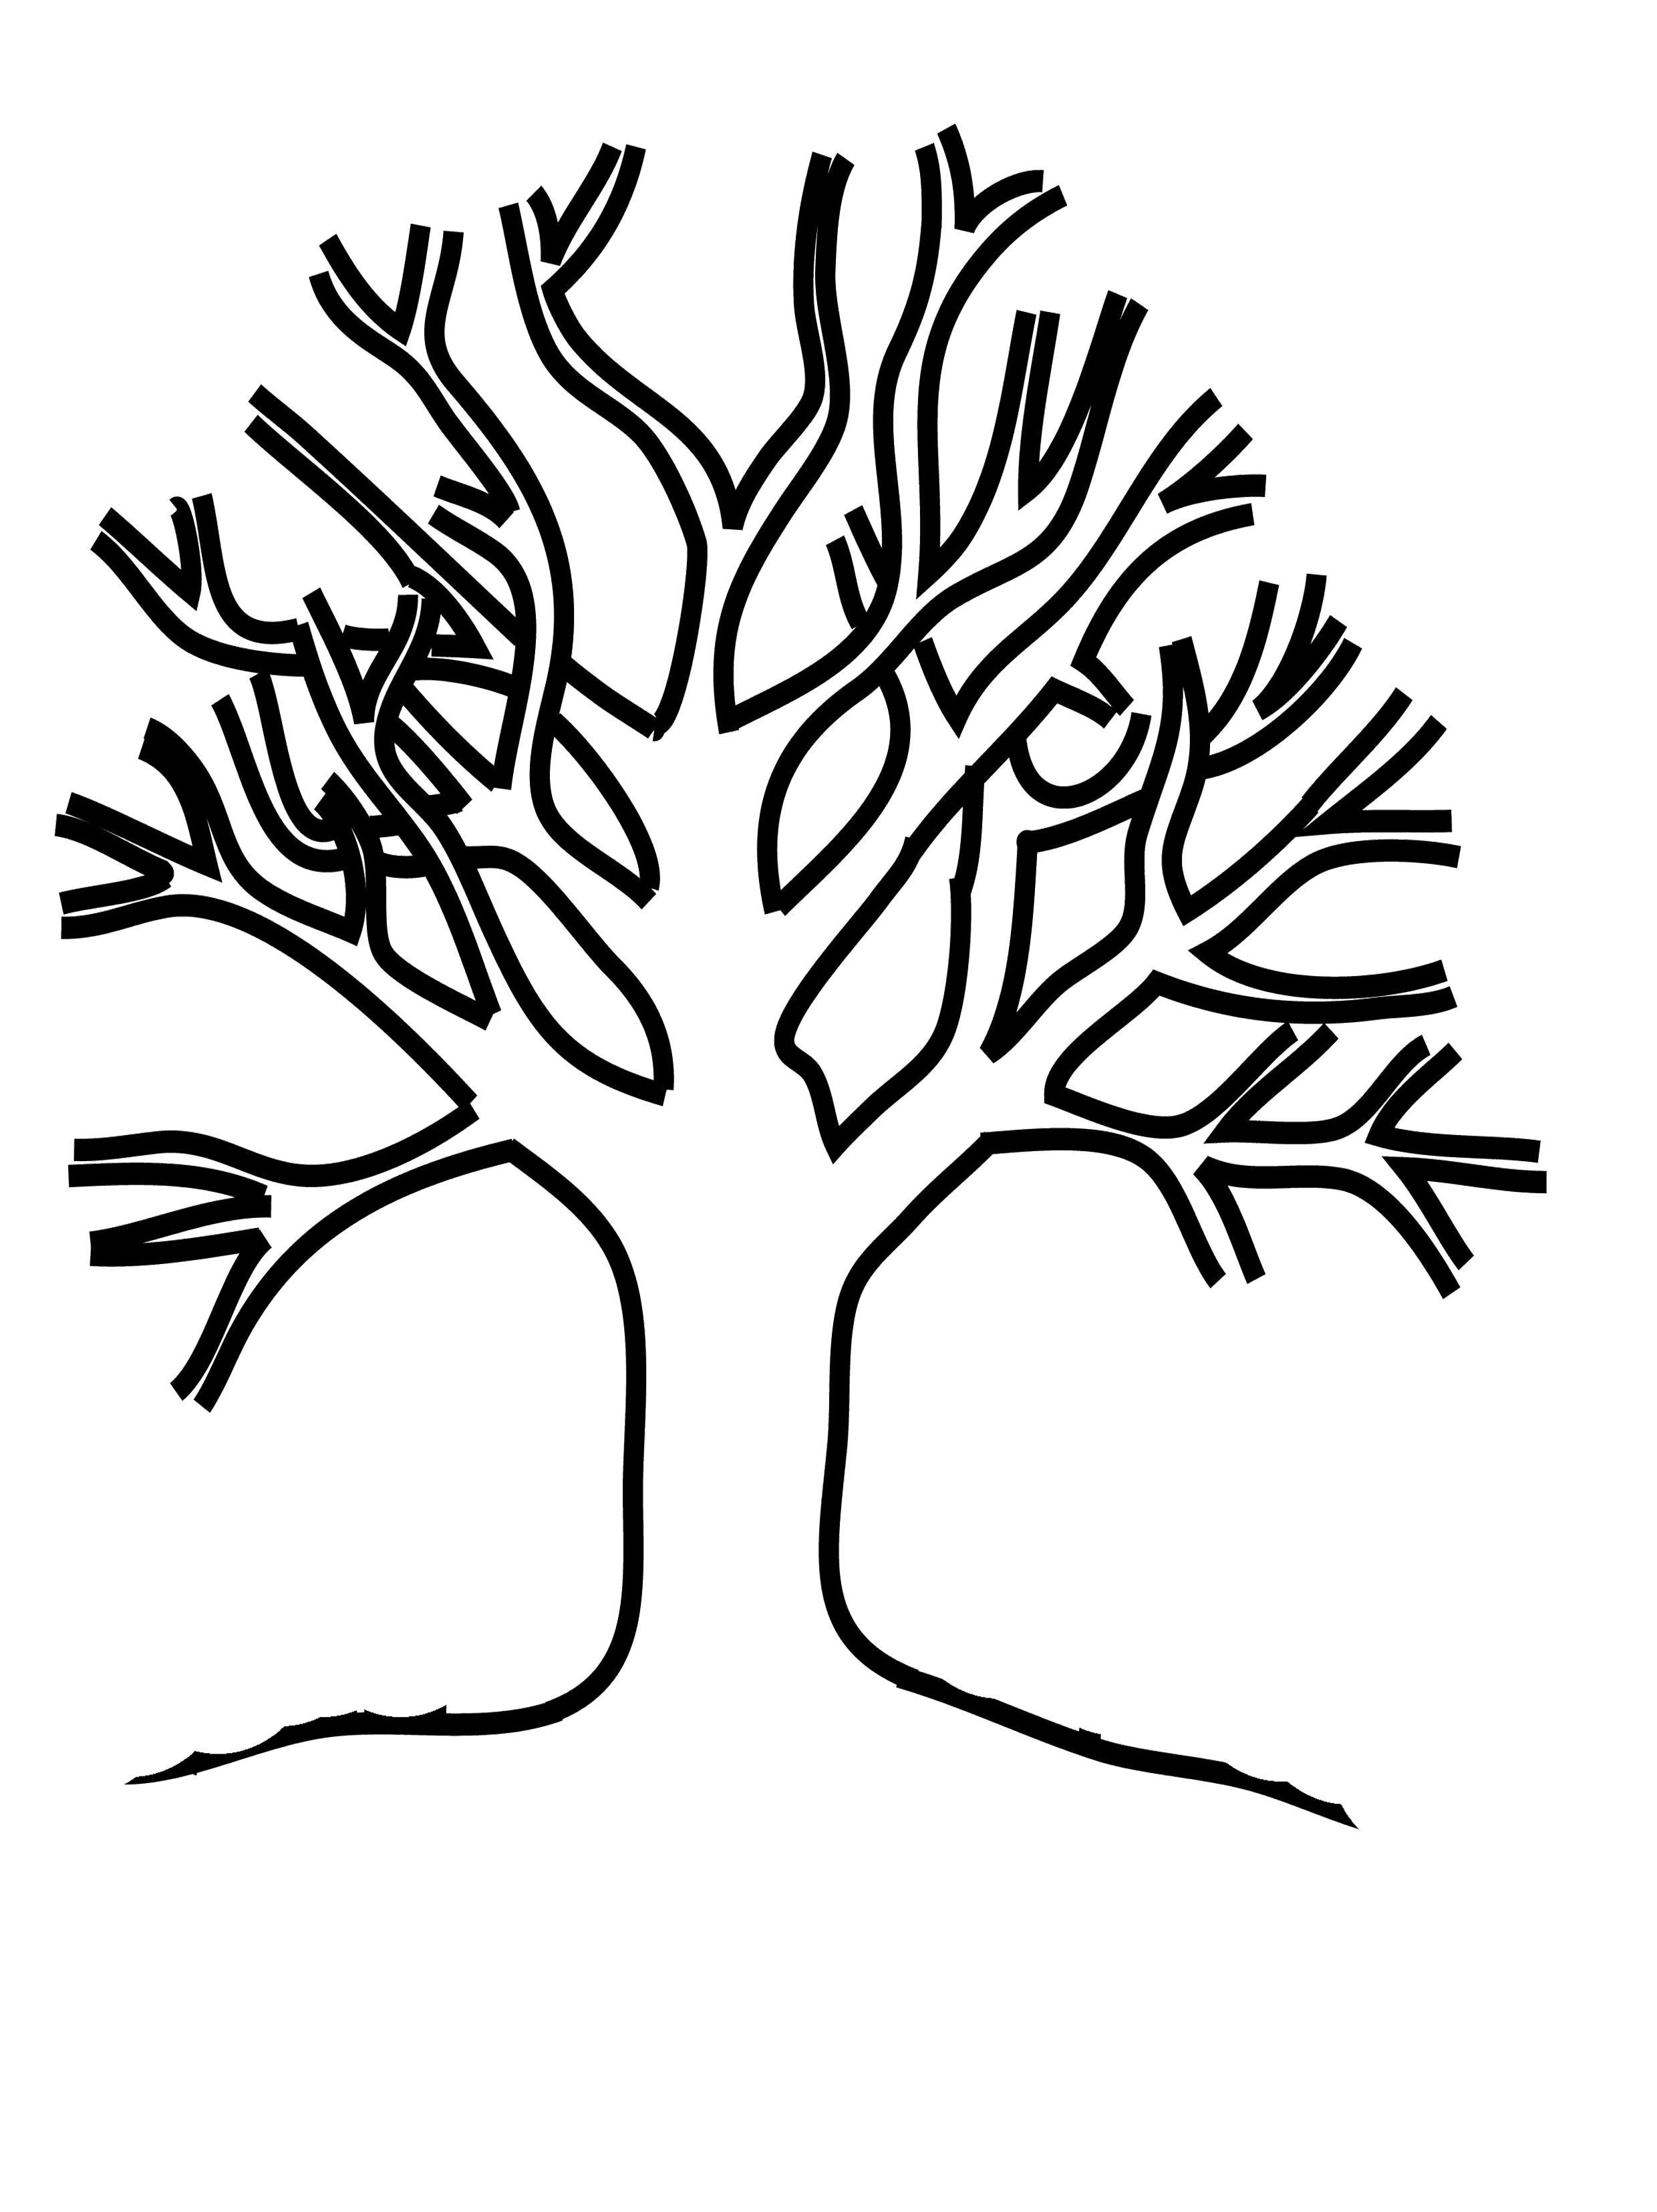 free winter tree coloring pages | Winter Tree Drawing at GetDrawings.com | Free for personal ...